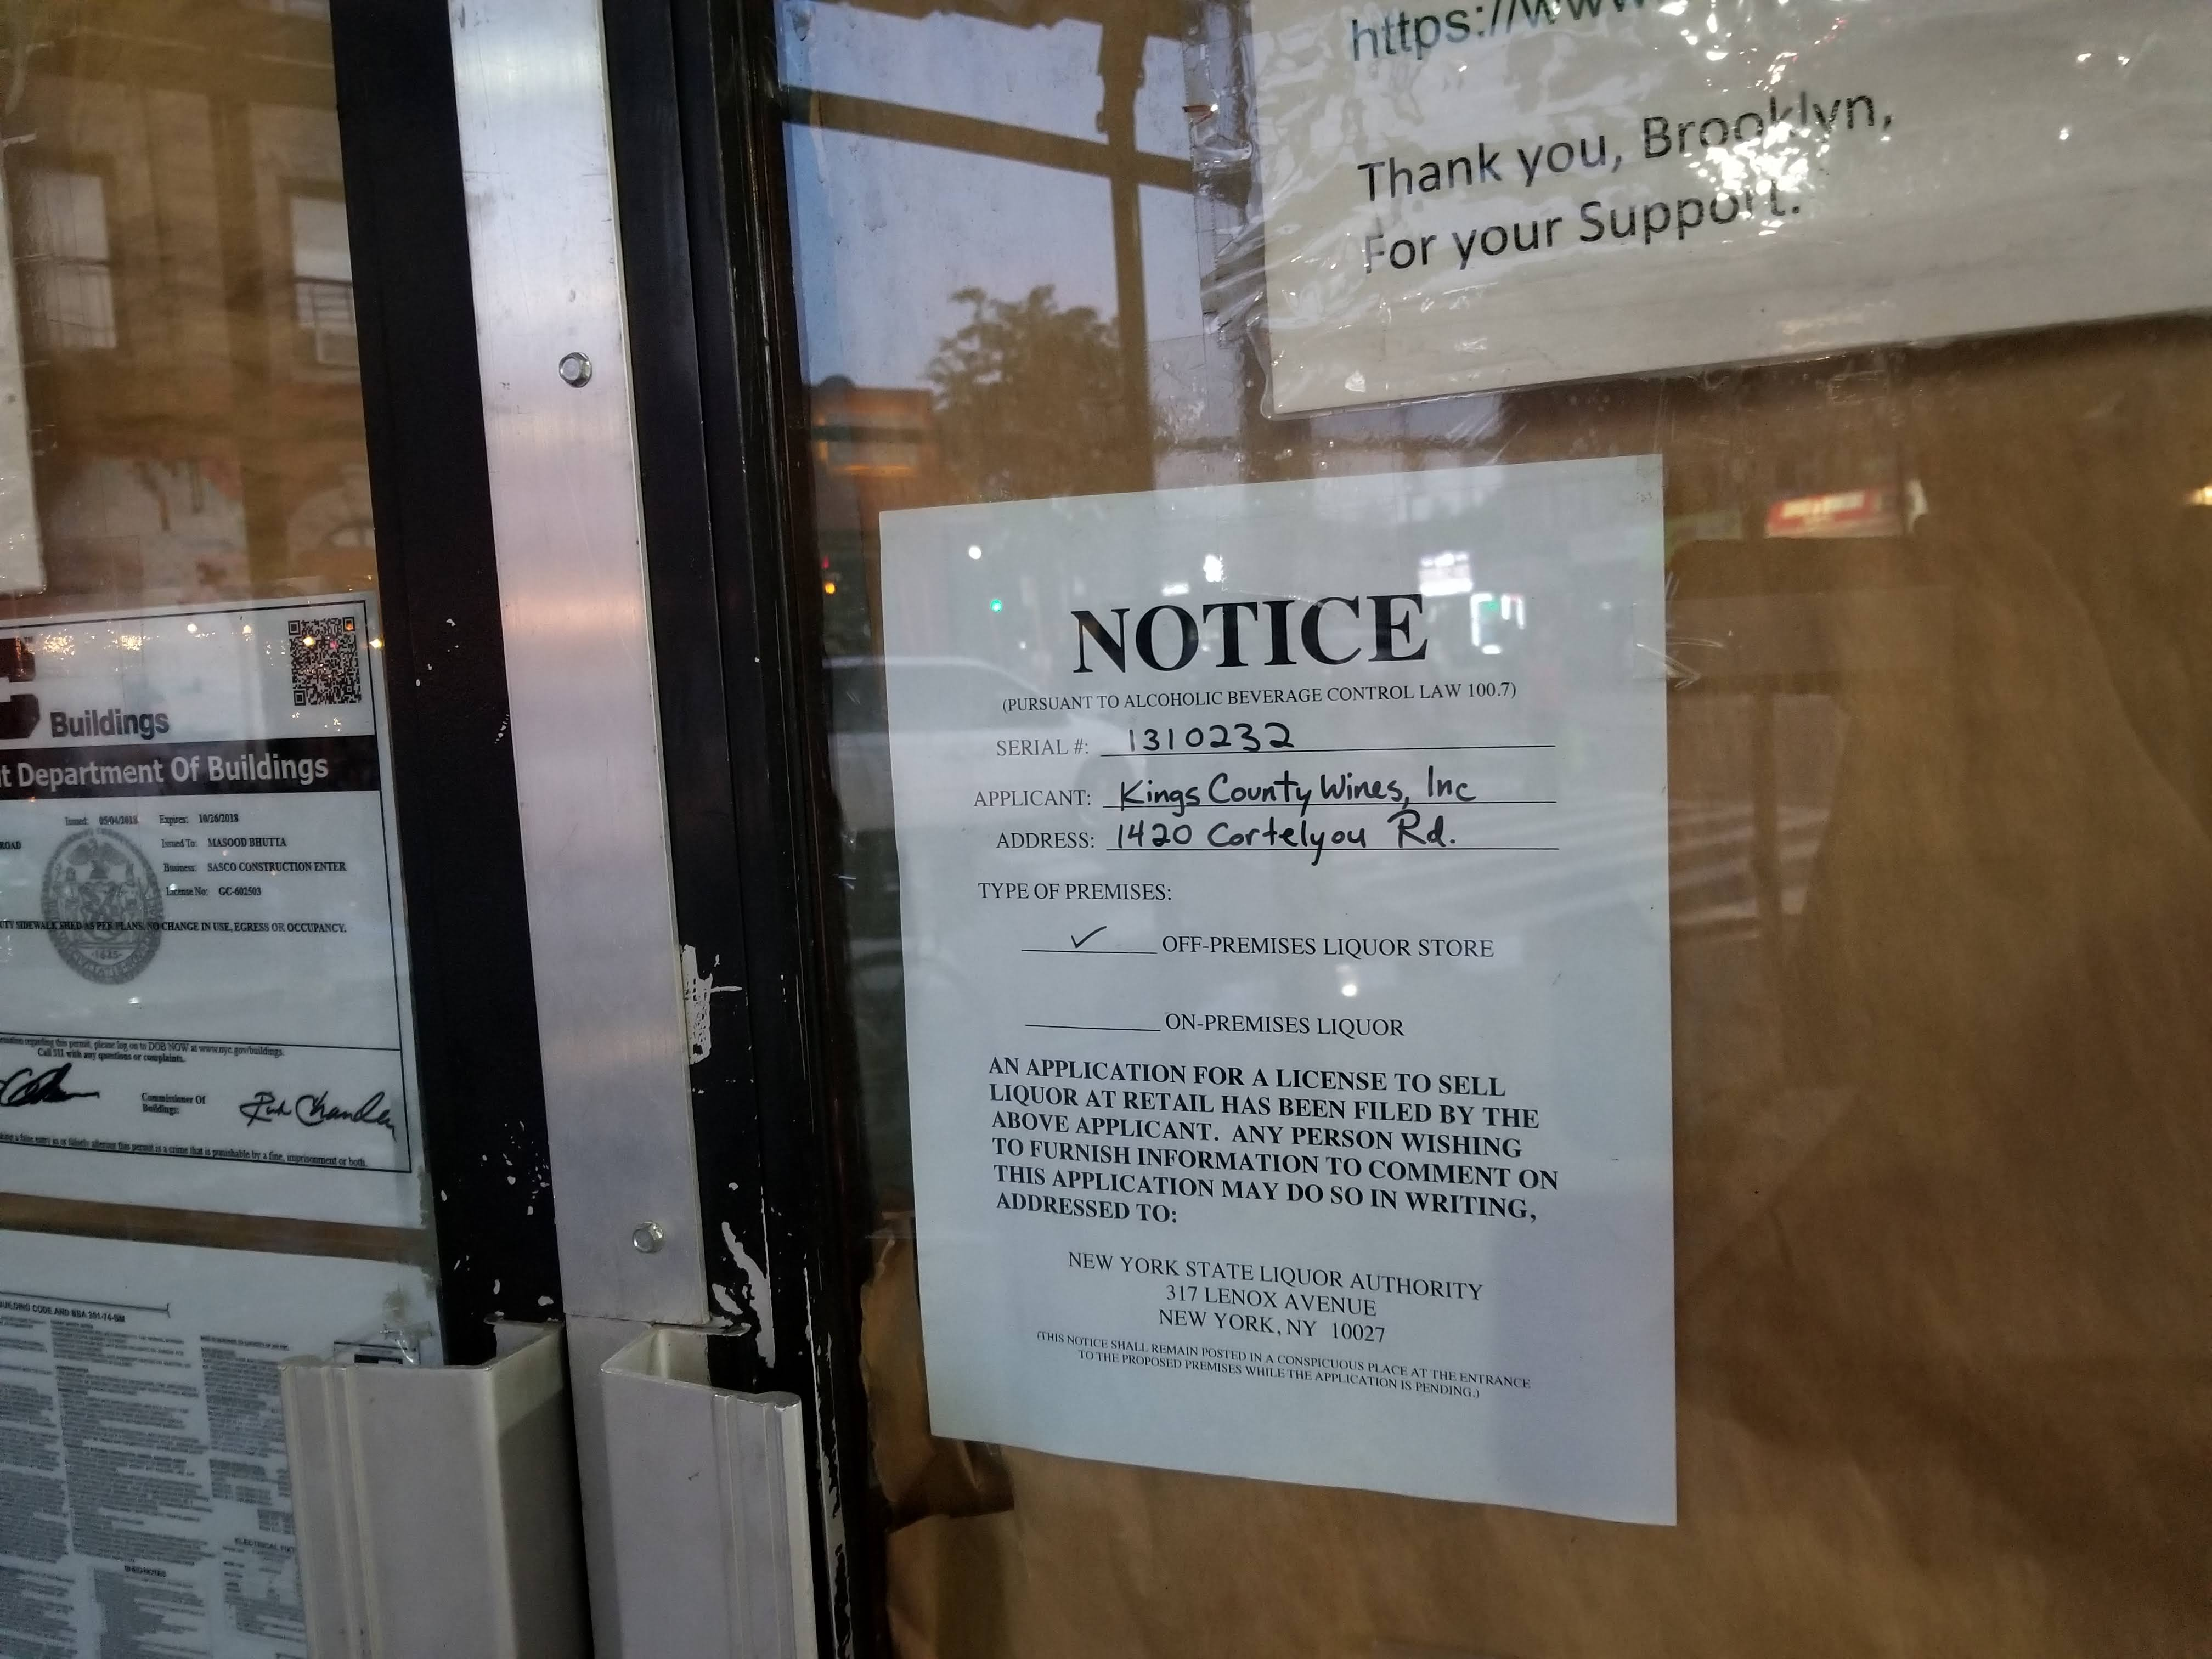 Retail reshuffles and new additions in Ditmas Park - mostly food ...